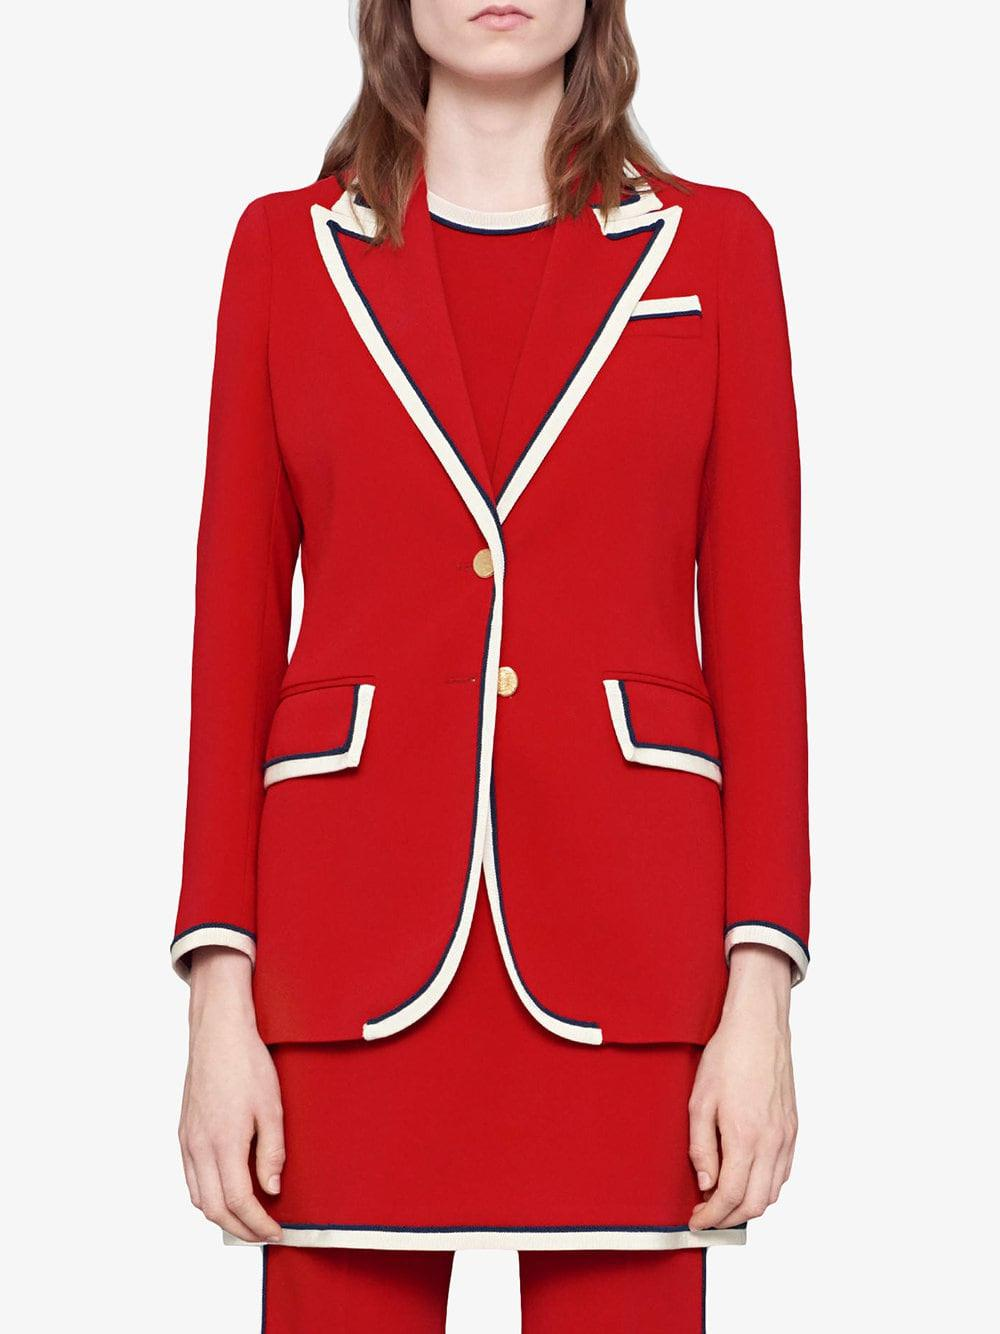 8ba78913b Gucci Stretch Viscose Jacket in Red - Save 41% - Lyst